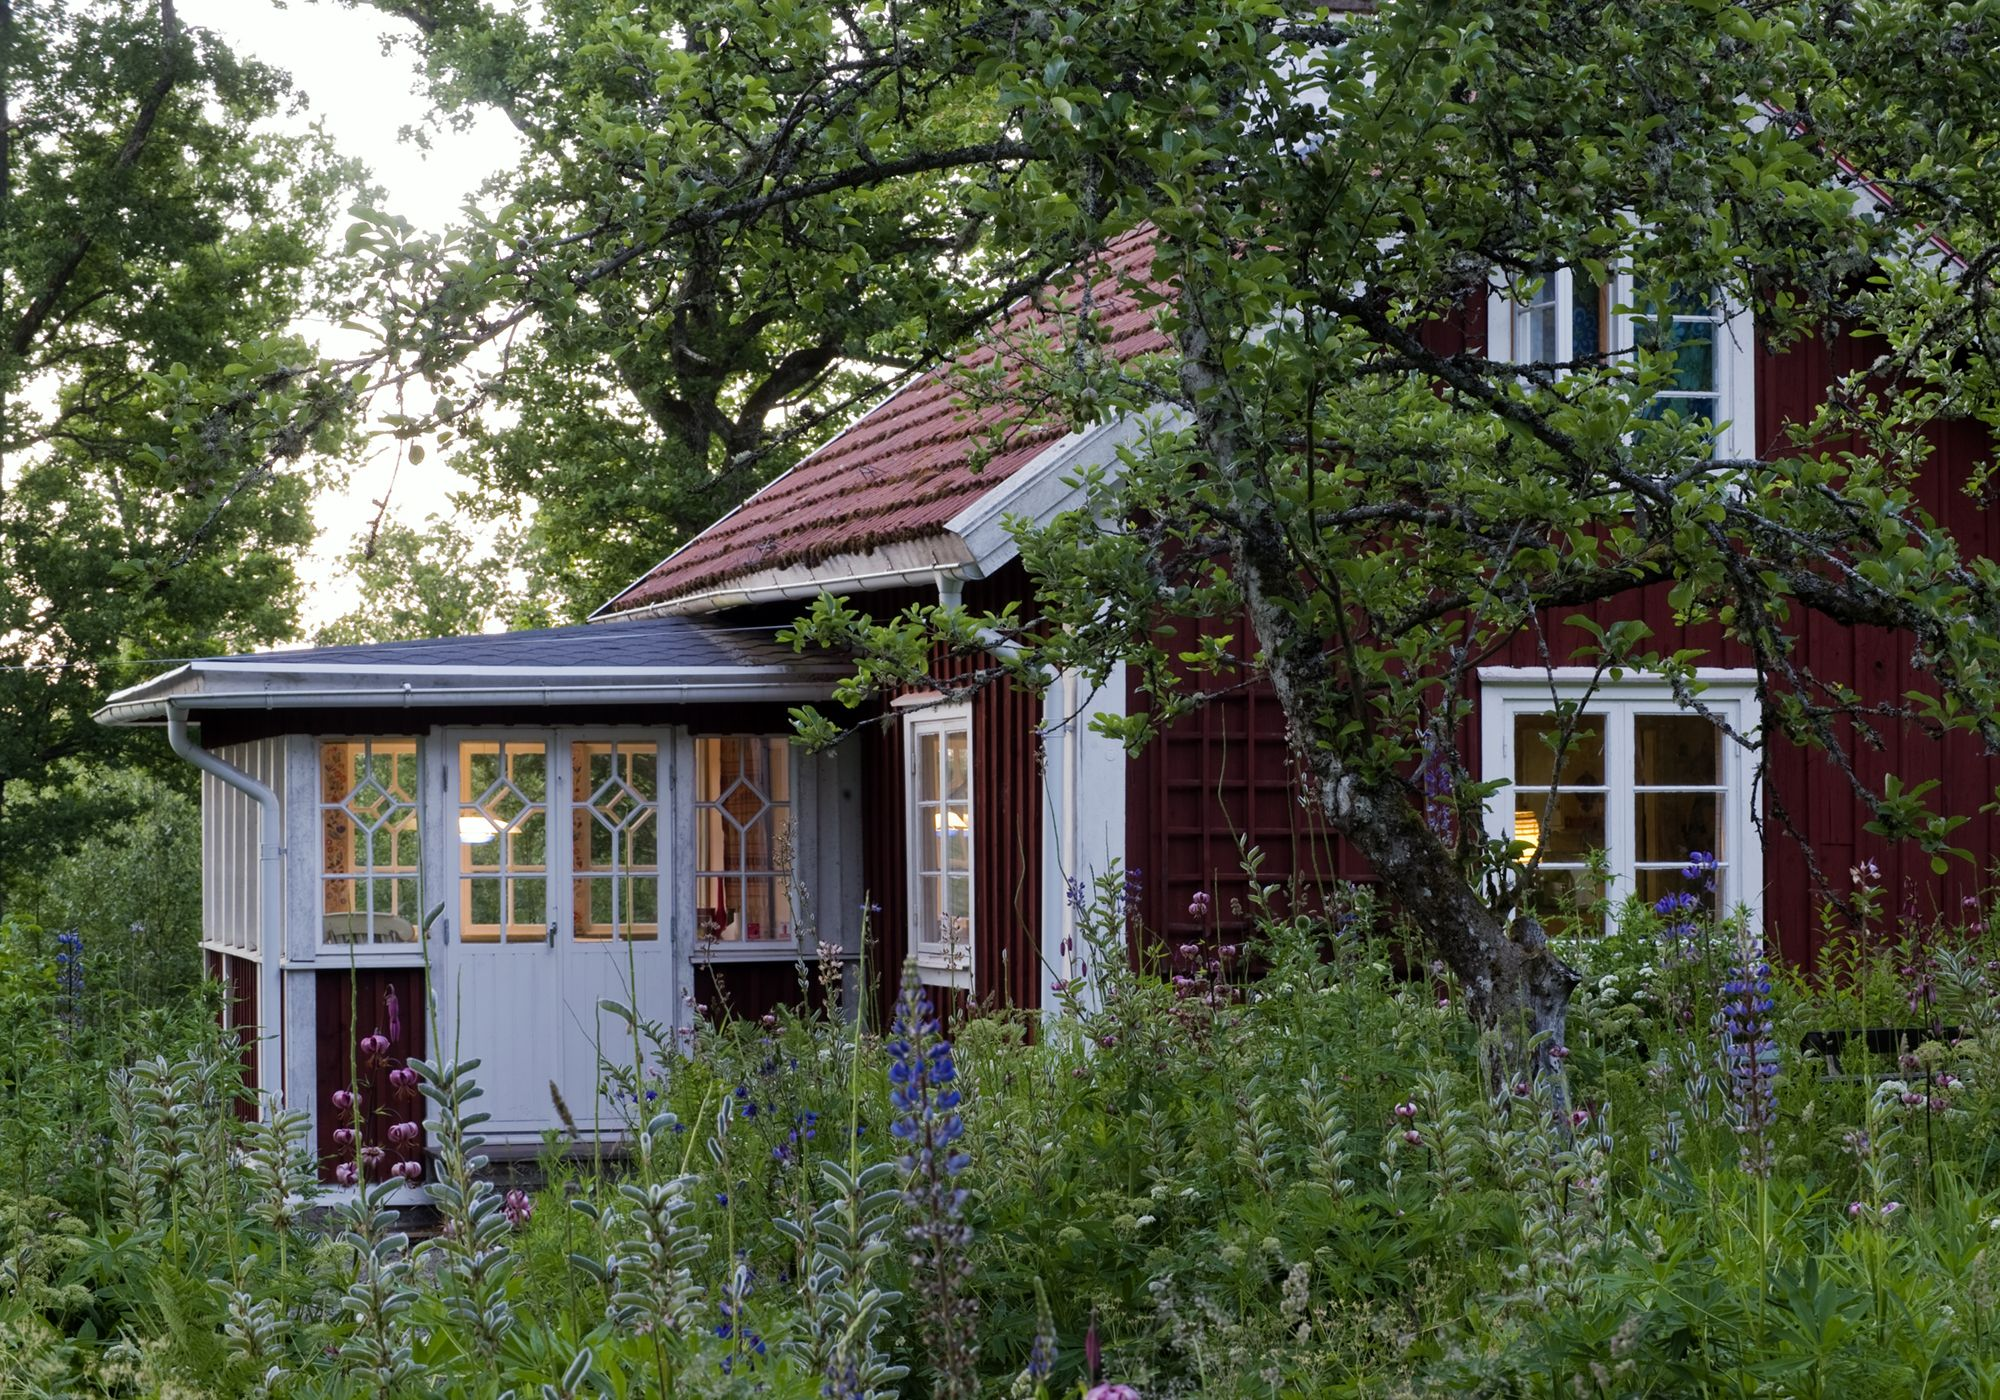 Such a Swedish summer house!